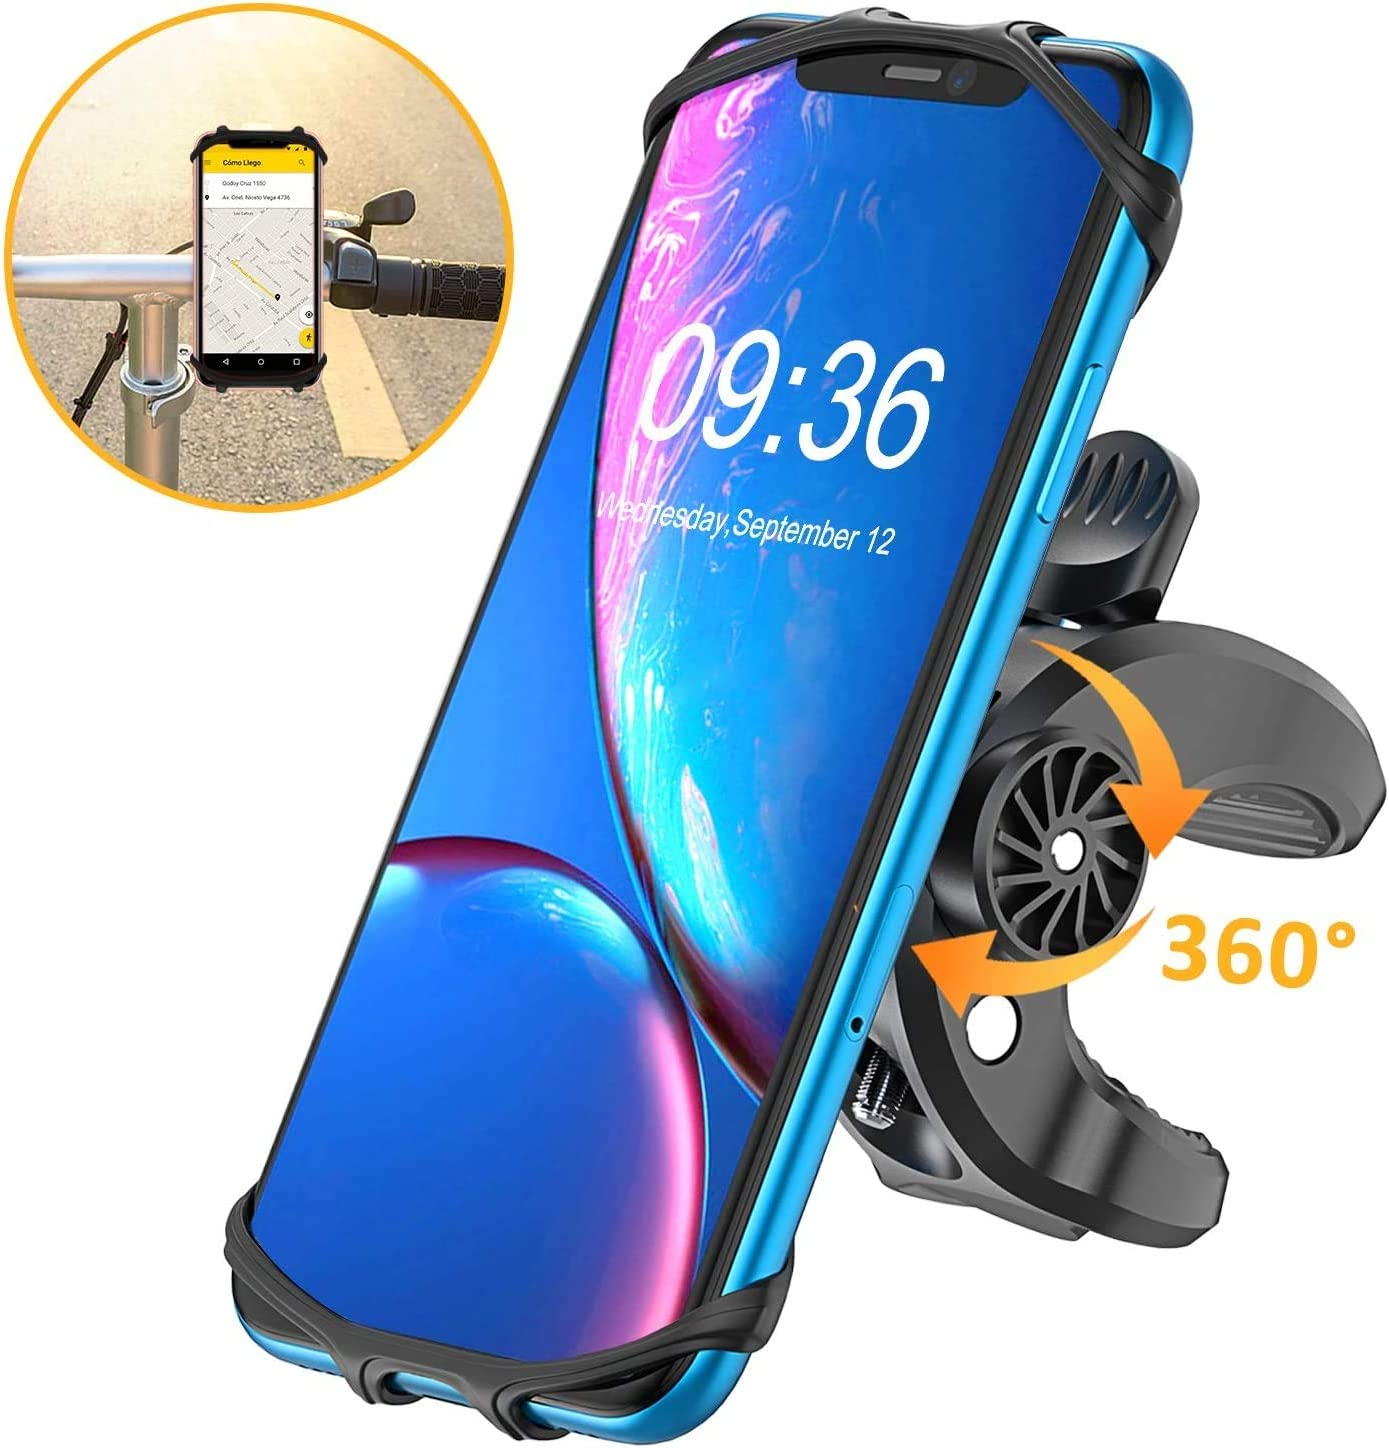 Galaxy S20//S10//S10e TEUMI 360/° Rotatable Bicycle Phone Holder Motorcycle Phone Mounts for iPhone 11//XR//8 Plus//SE Bike Phone Mount